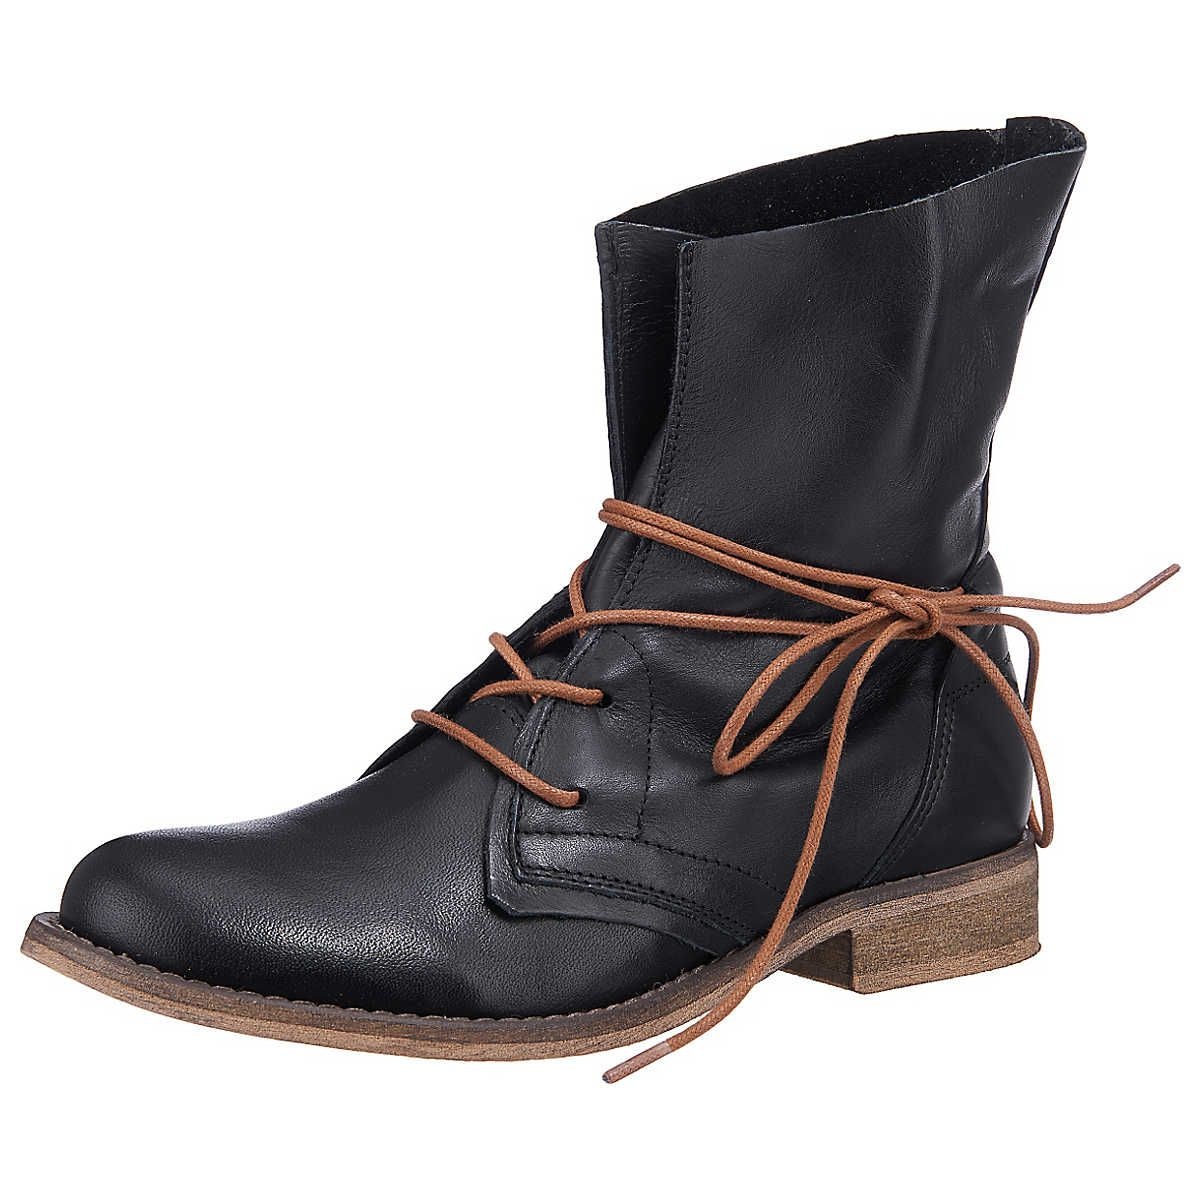 Unser MUST HAVE des Tages heute: SPM Oklahoma Stiefeletten